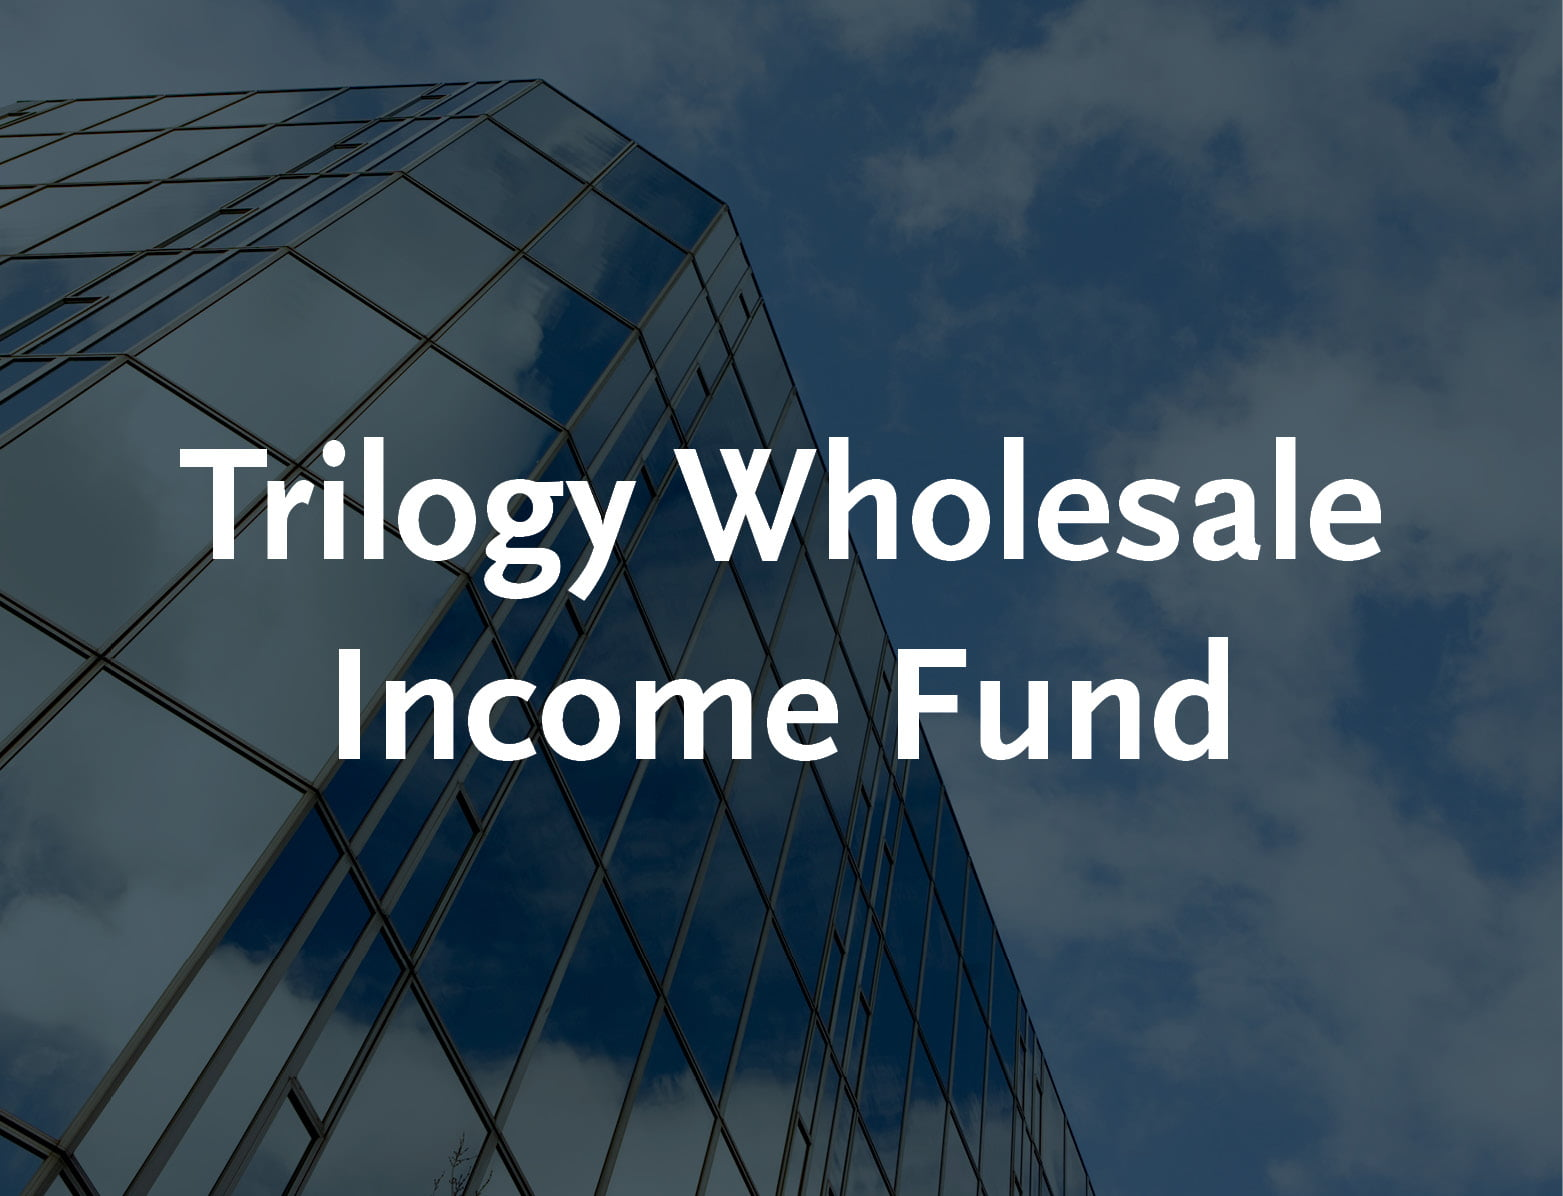 Trilogy Wholesale Income Fund | Trilogy Funds Australia